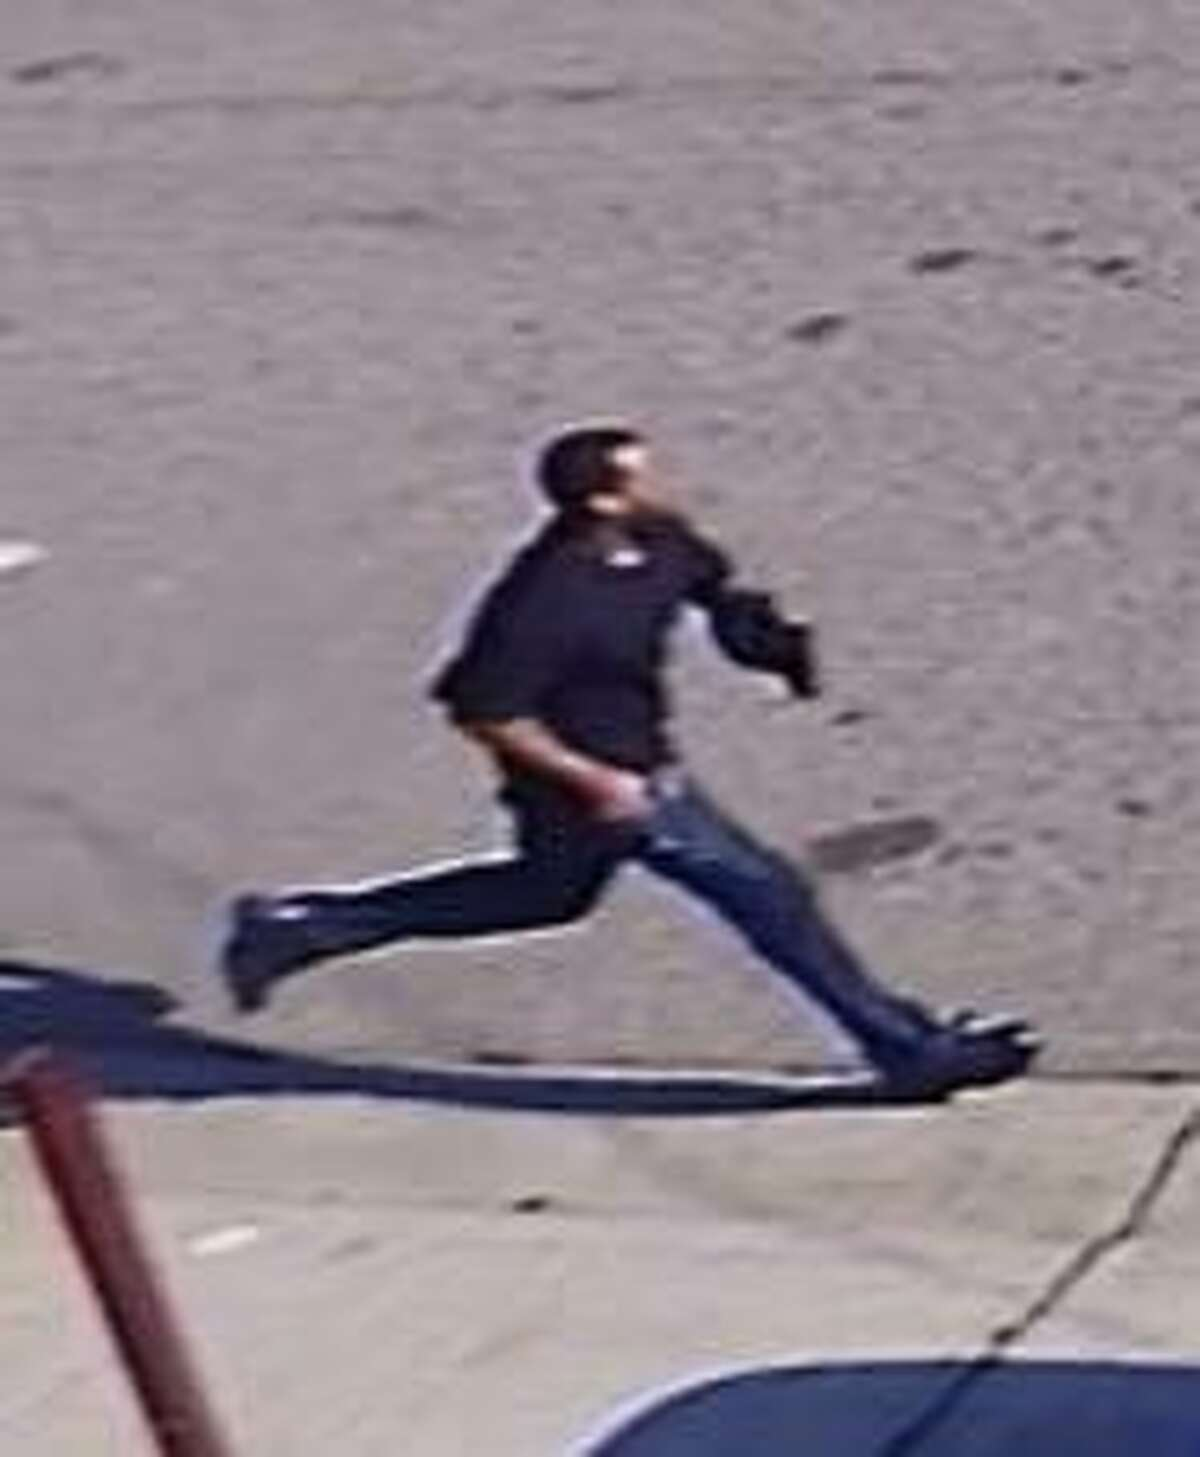 A man holding what appears to be a gun after a homicide in Oakland, officials said. Oakland police are searching for the suspect.